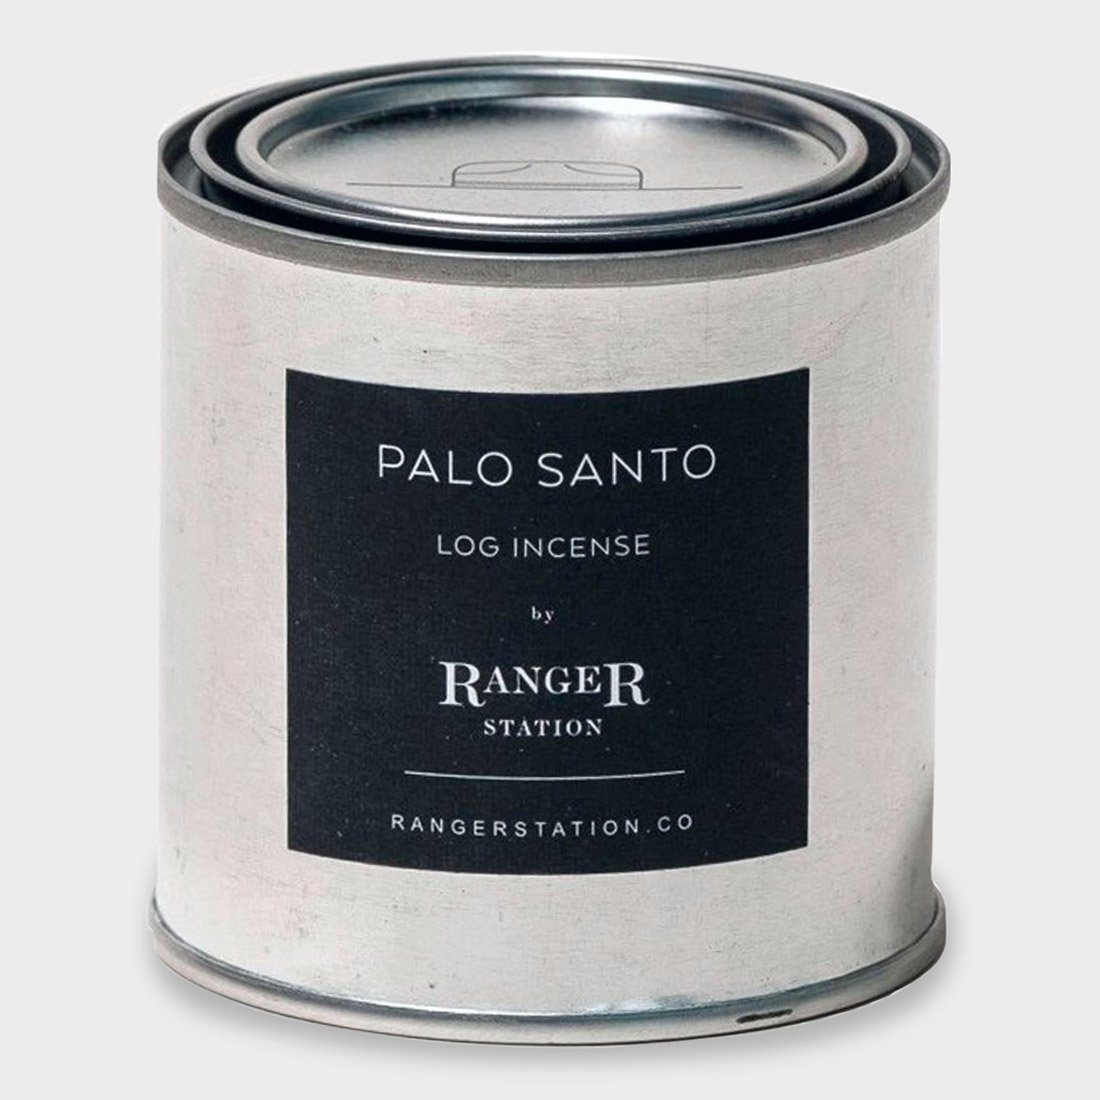 Ranger Station Log Incense Palo Santo